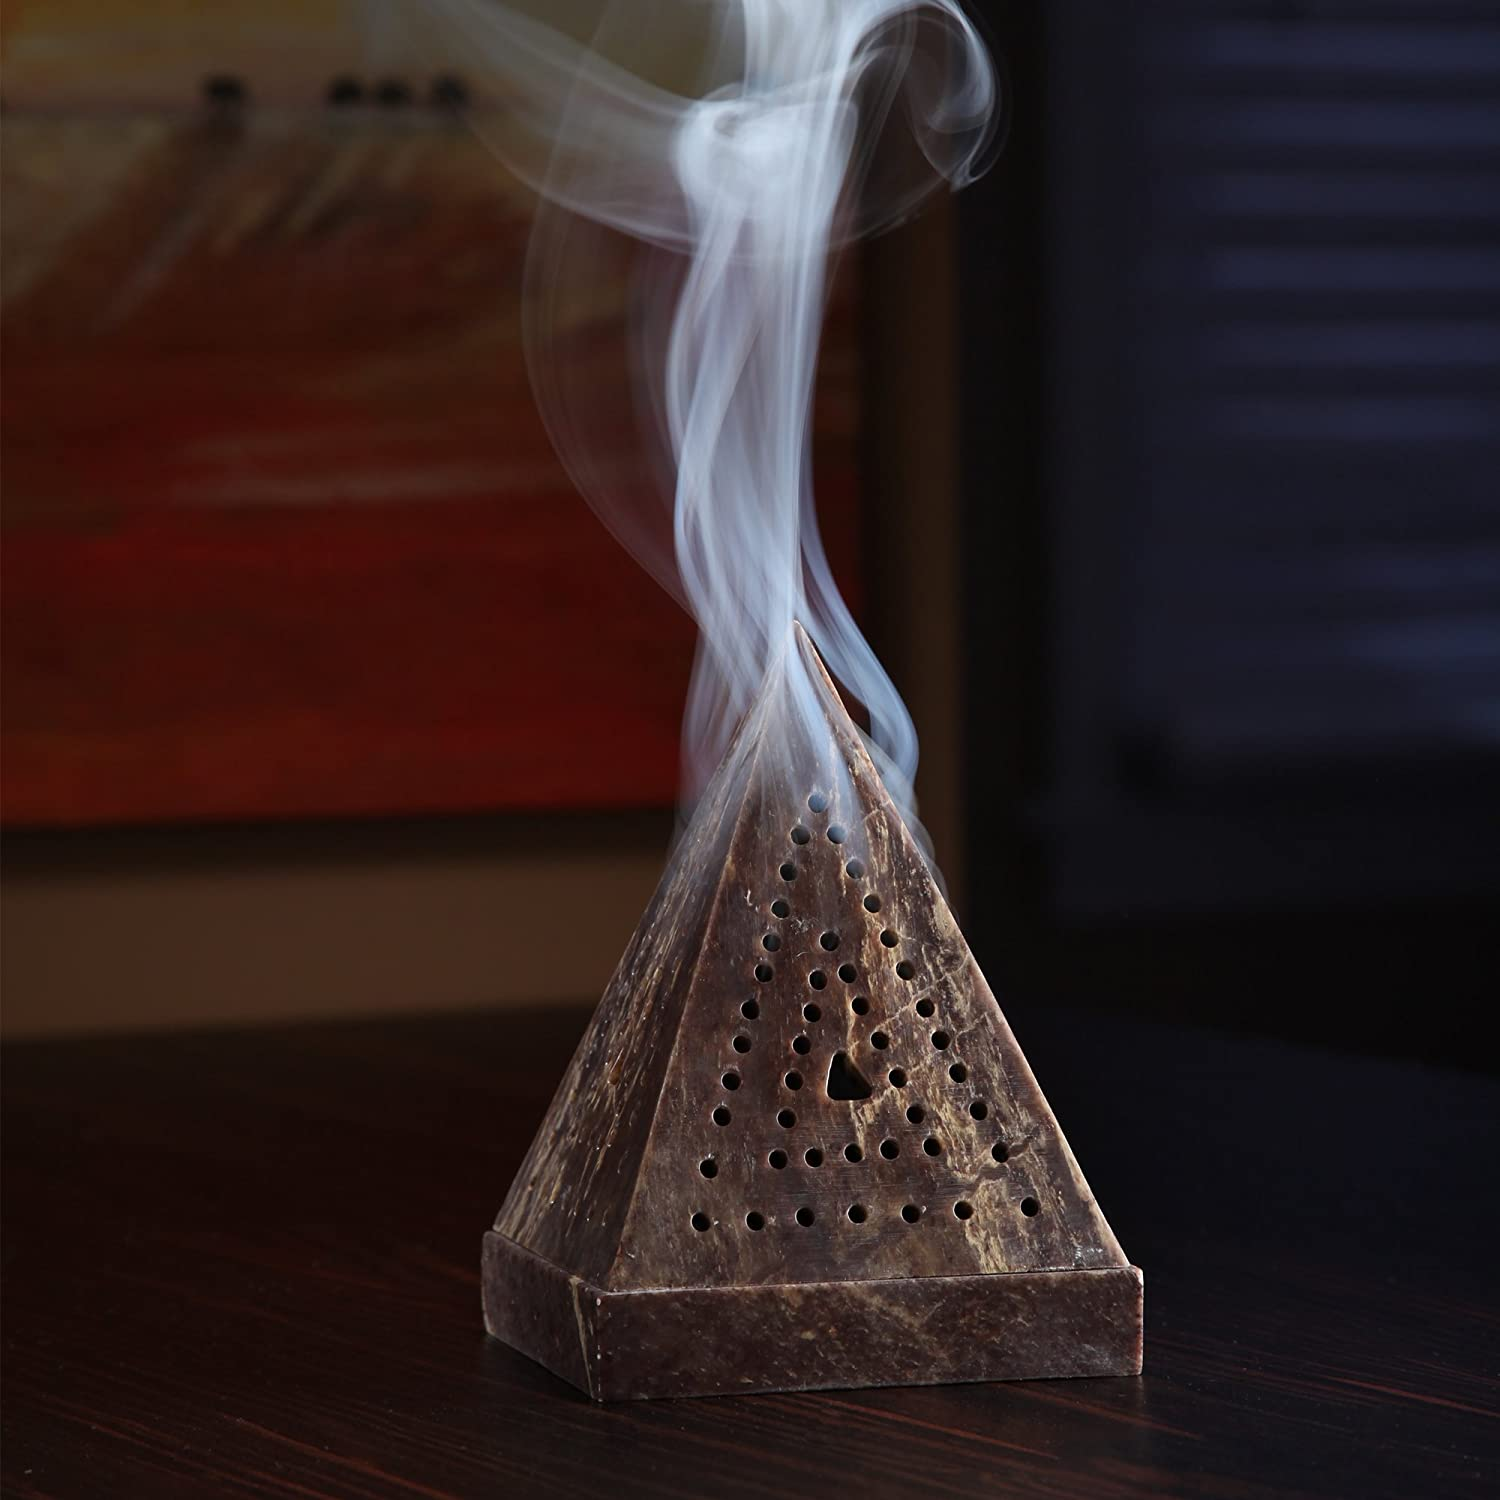 Zen Vastu Incense Cone Holder Spa Reiki Chakra Settings Hosley 5 High Large Soapstone Triangle Pyramid O3 HG Global FBA-H46542PS-1-EA Ideal Gift for Aromatherapy